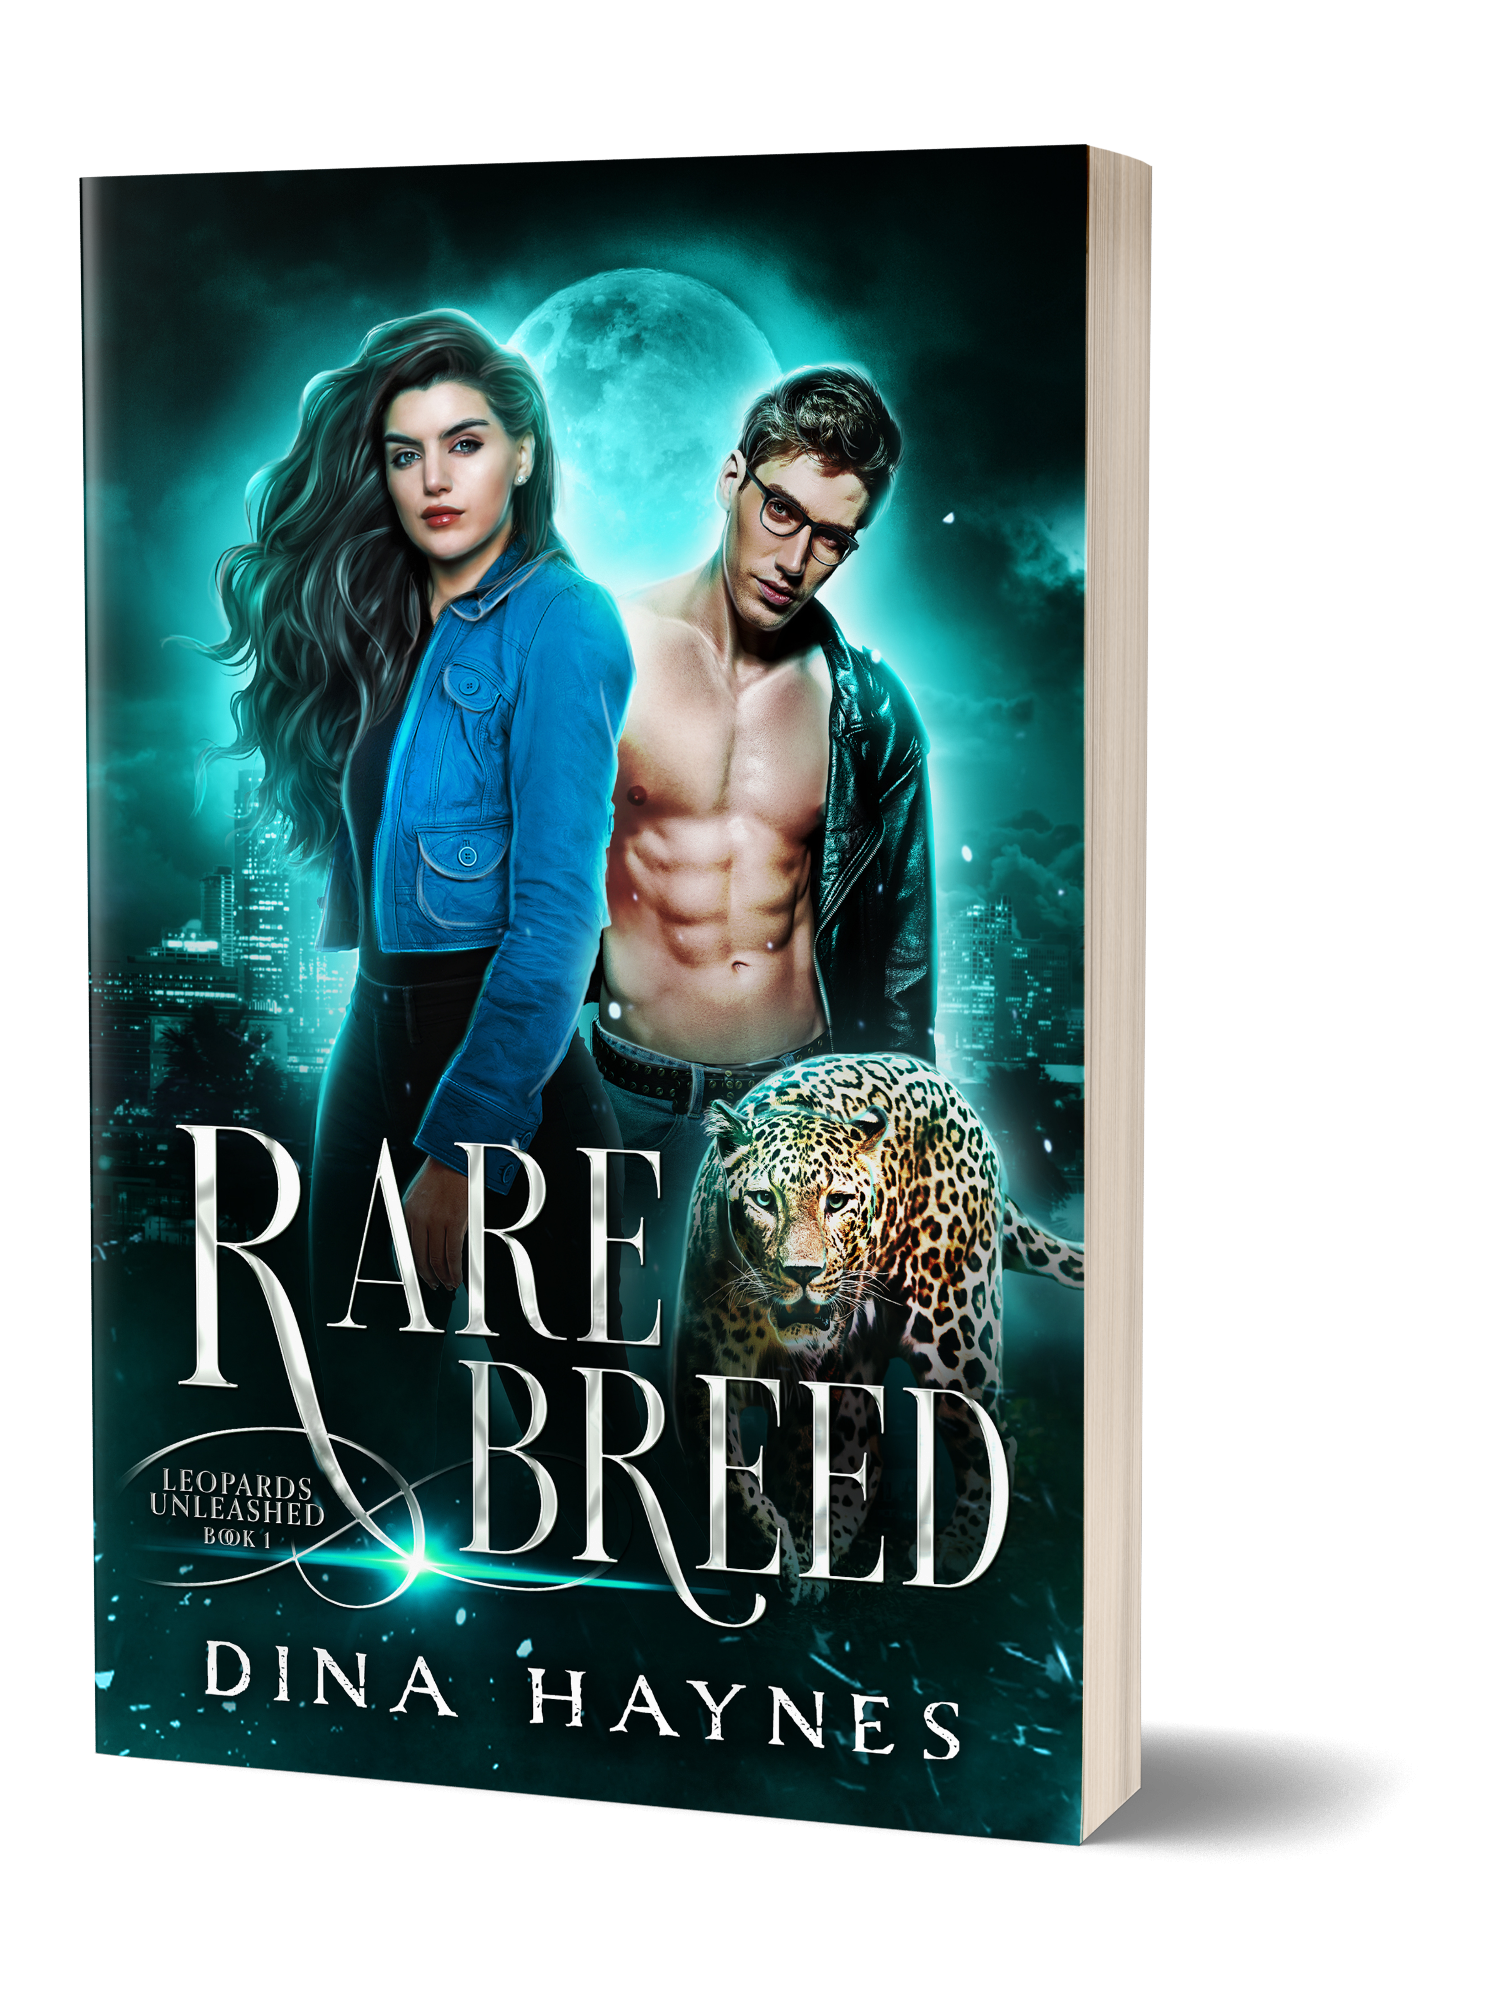 She was exiled at birth. He terrifies the other monsters. Can two outsider wereleopards overcome their differences and find their own way to love?